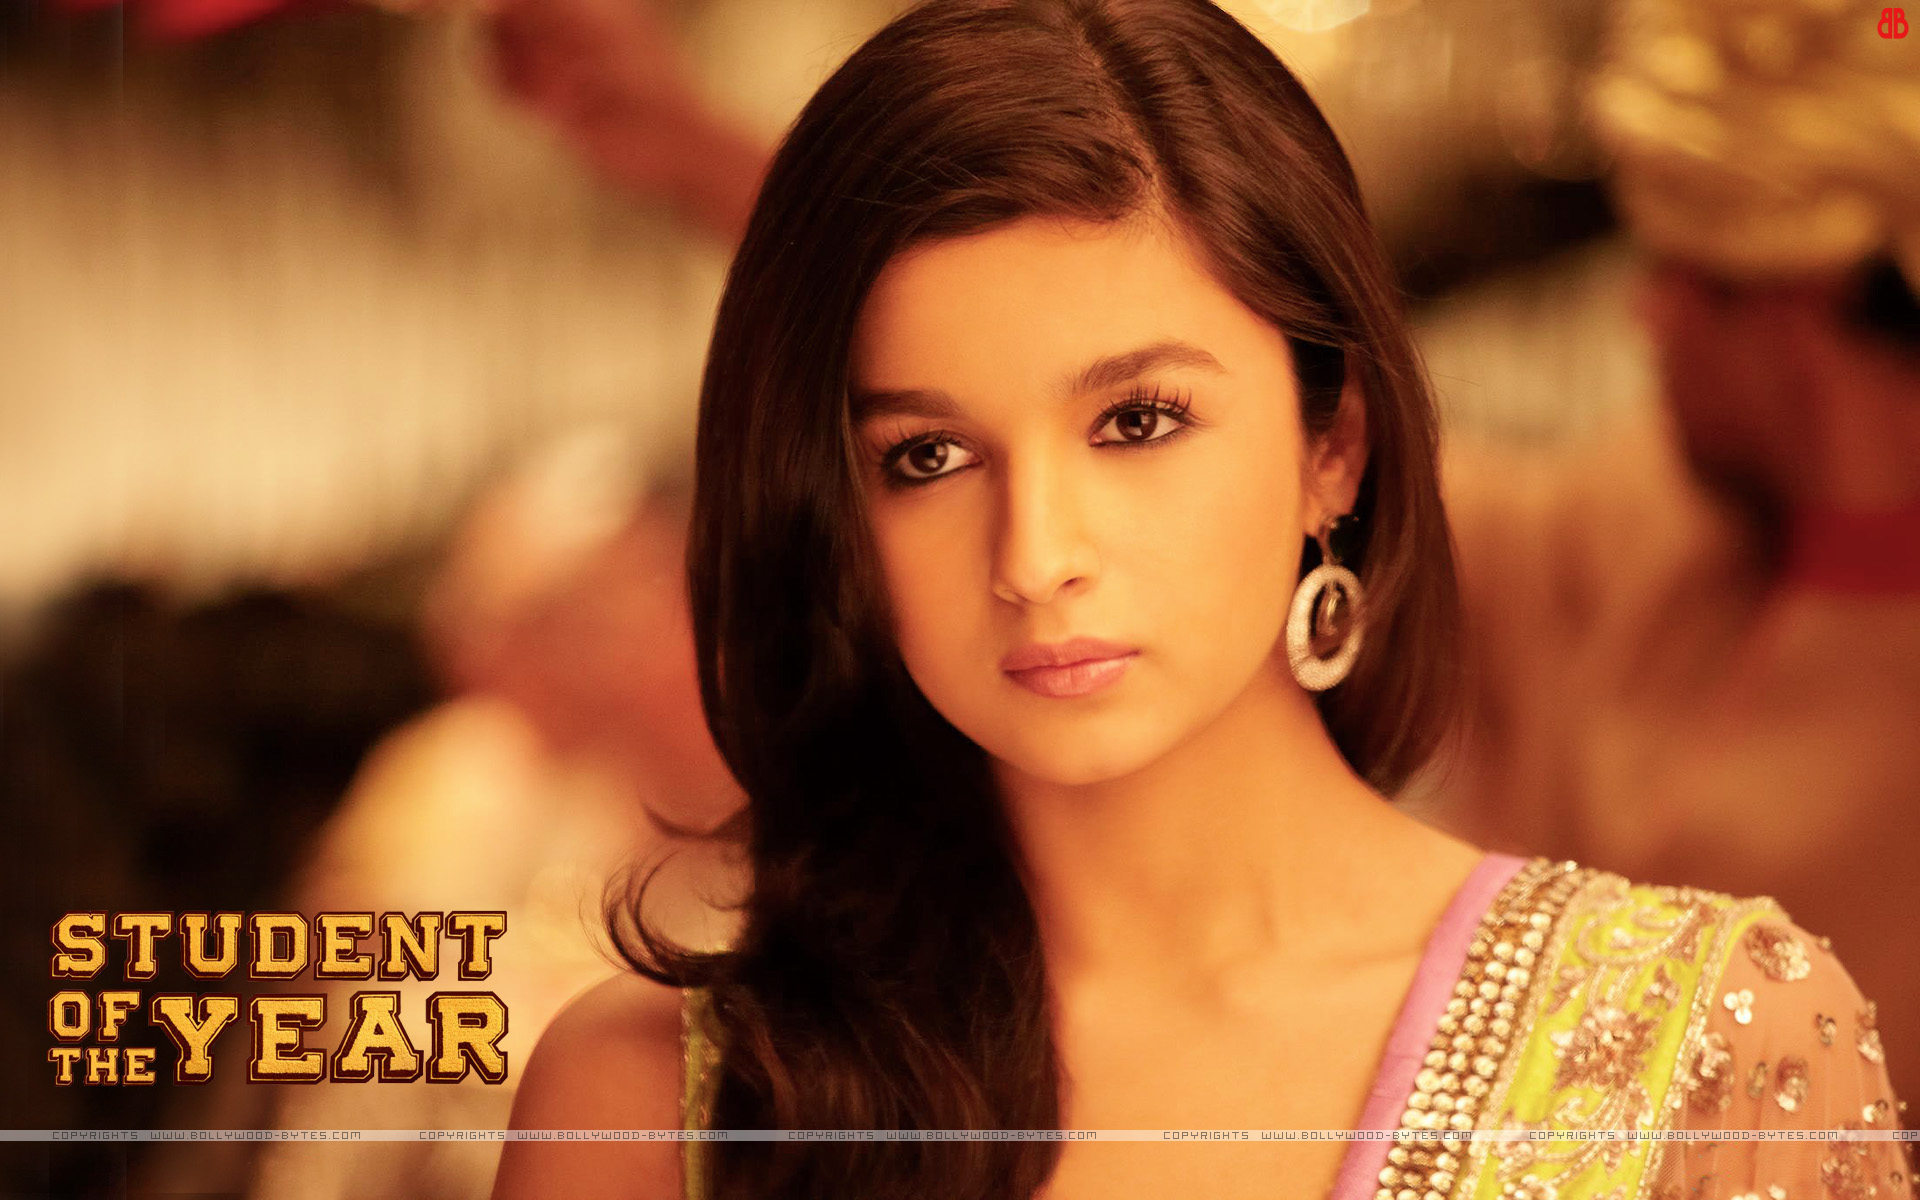 alia bhatt in student of the year wallpapers - 50 Beautiful Alia Bhatt Wallpapers and Pics PhotoShotoh